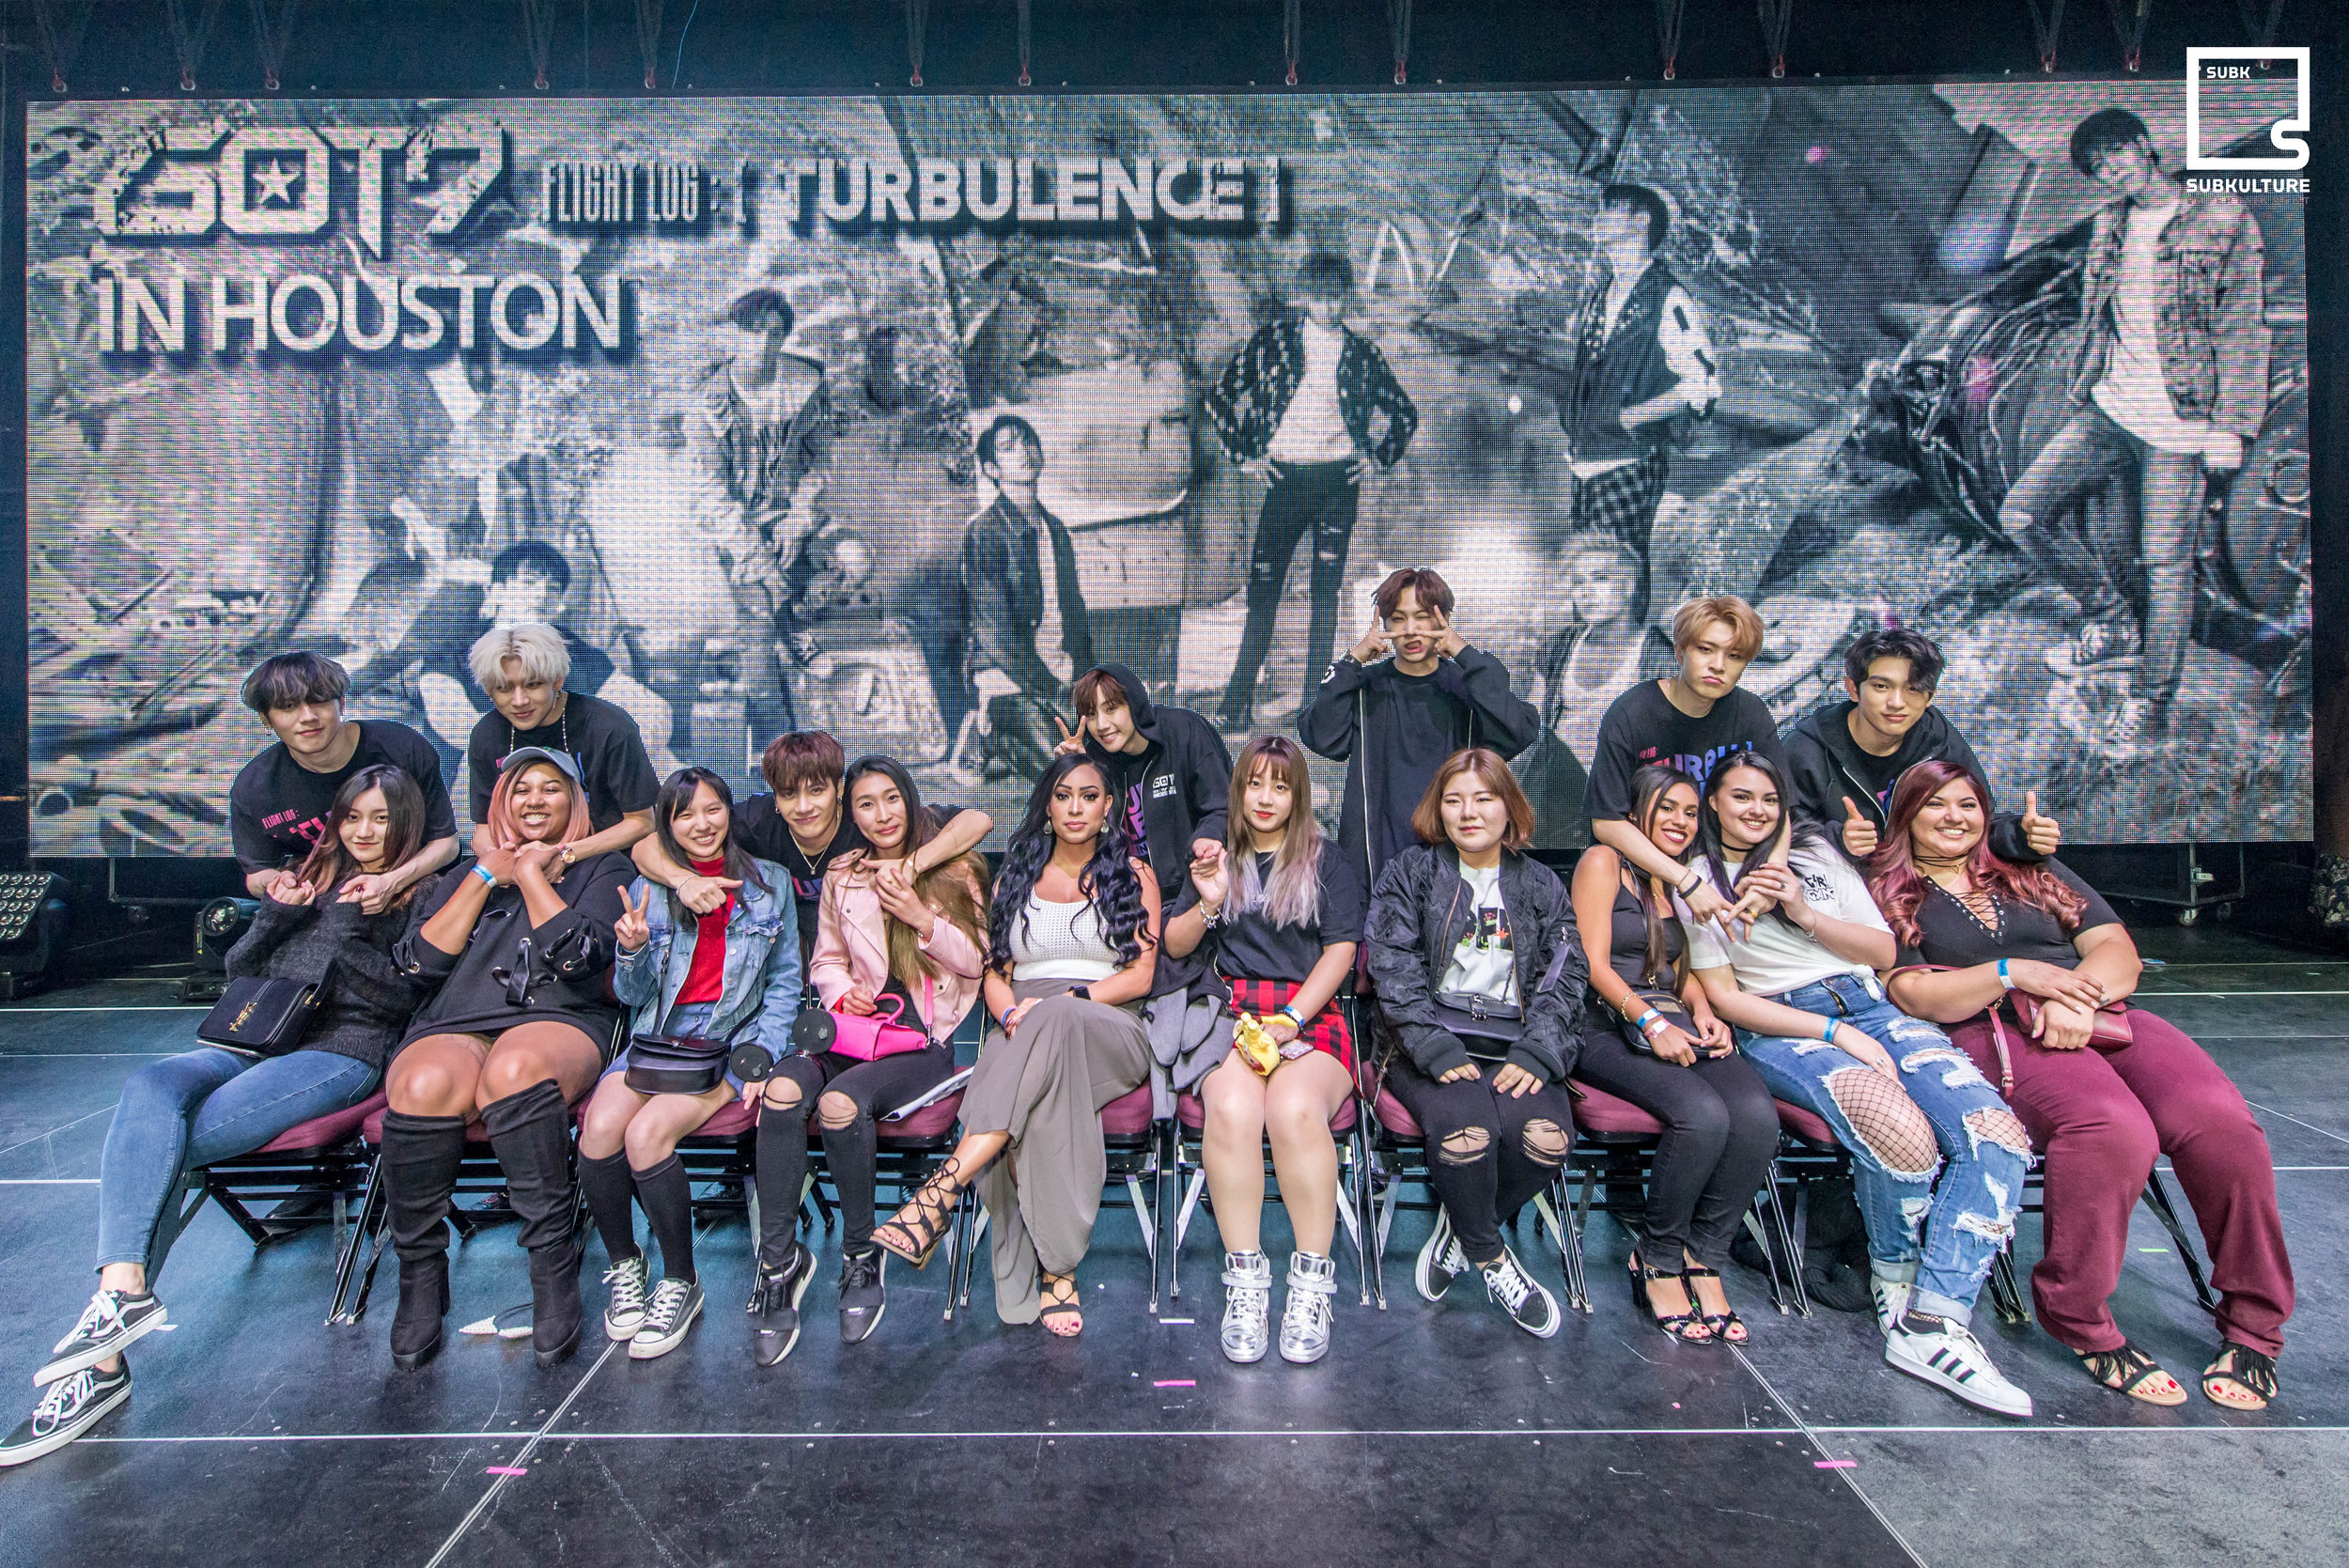 GOT7 Fan Photo Houston 2017 SubKulture Entertainment-3782 copy.jpg